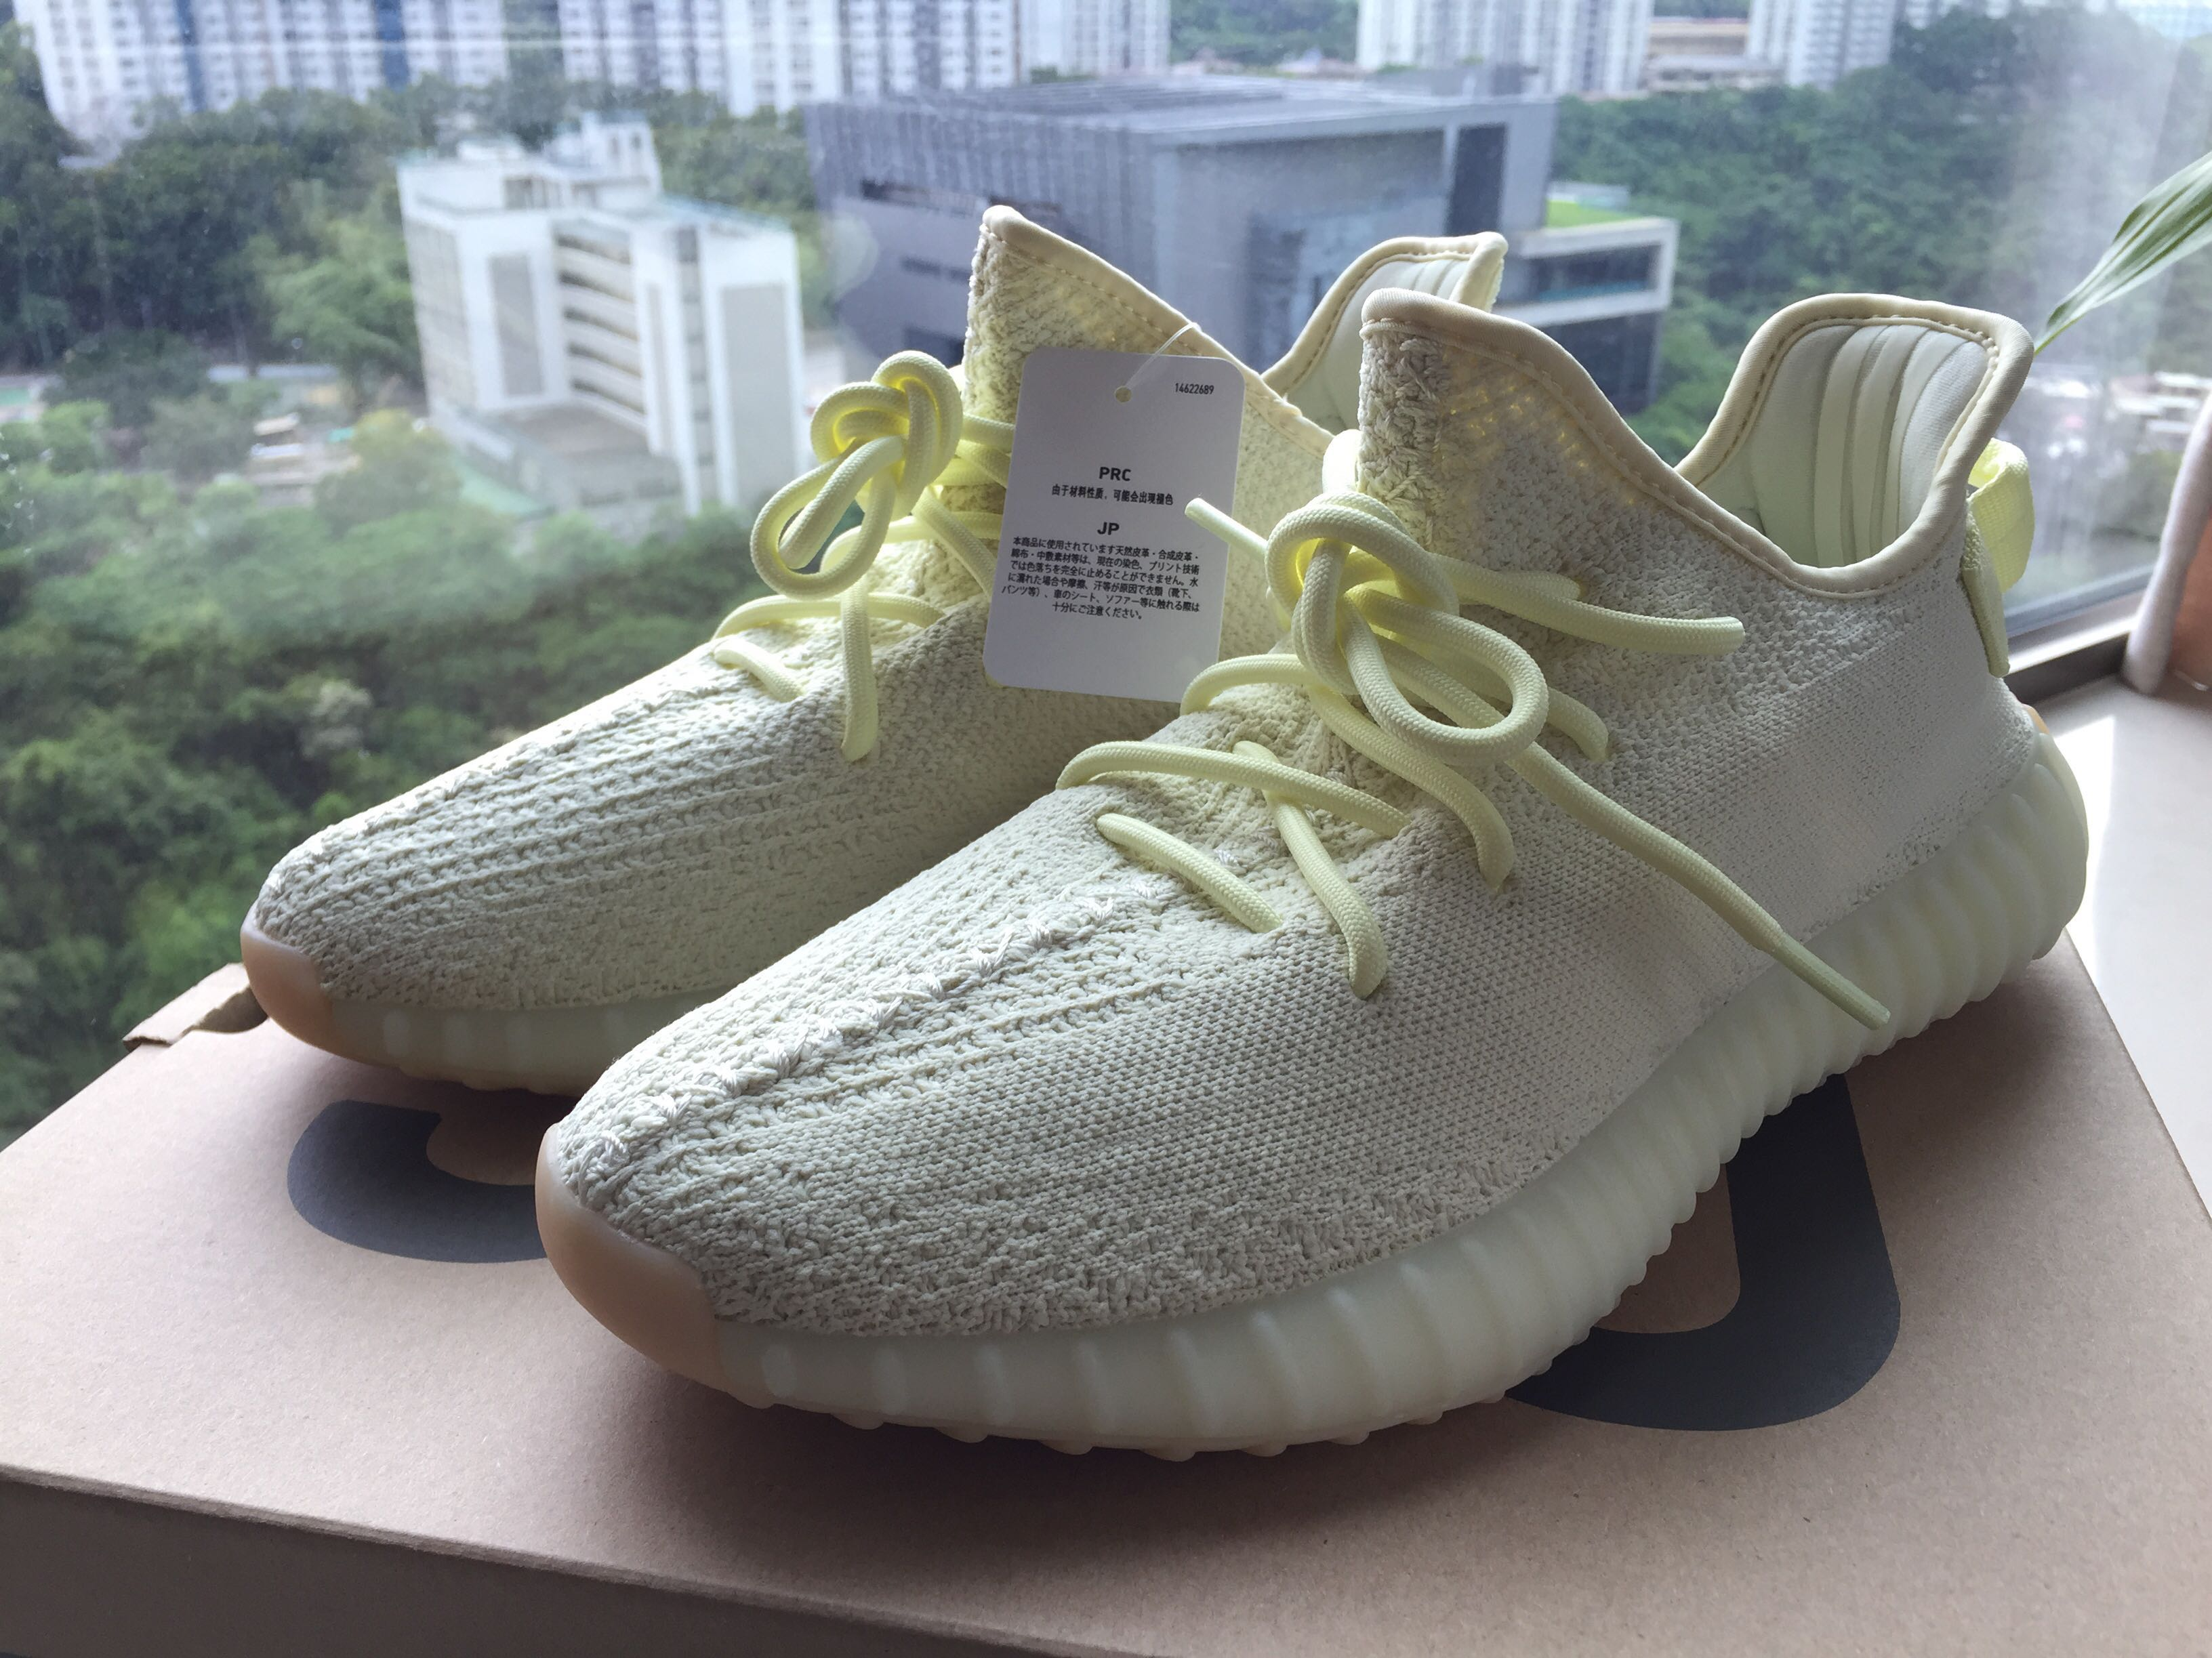 a3d4f1bfcb7b0 Yeezy Boost 350 V2 butter US9 UK8.5 500 700 Nike element 87 offwhite ...